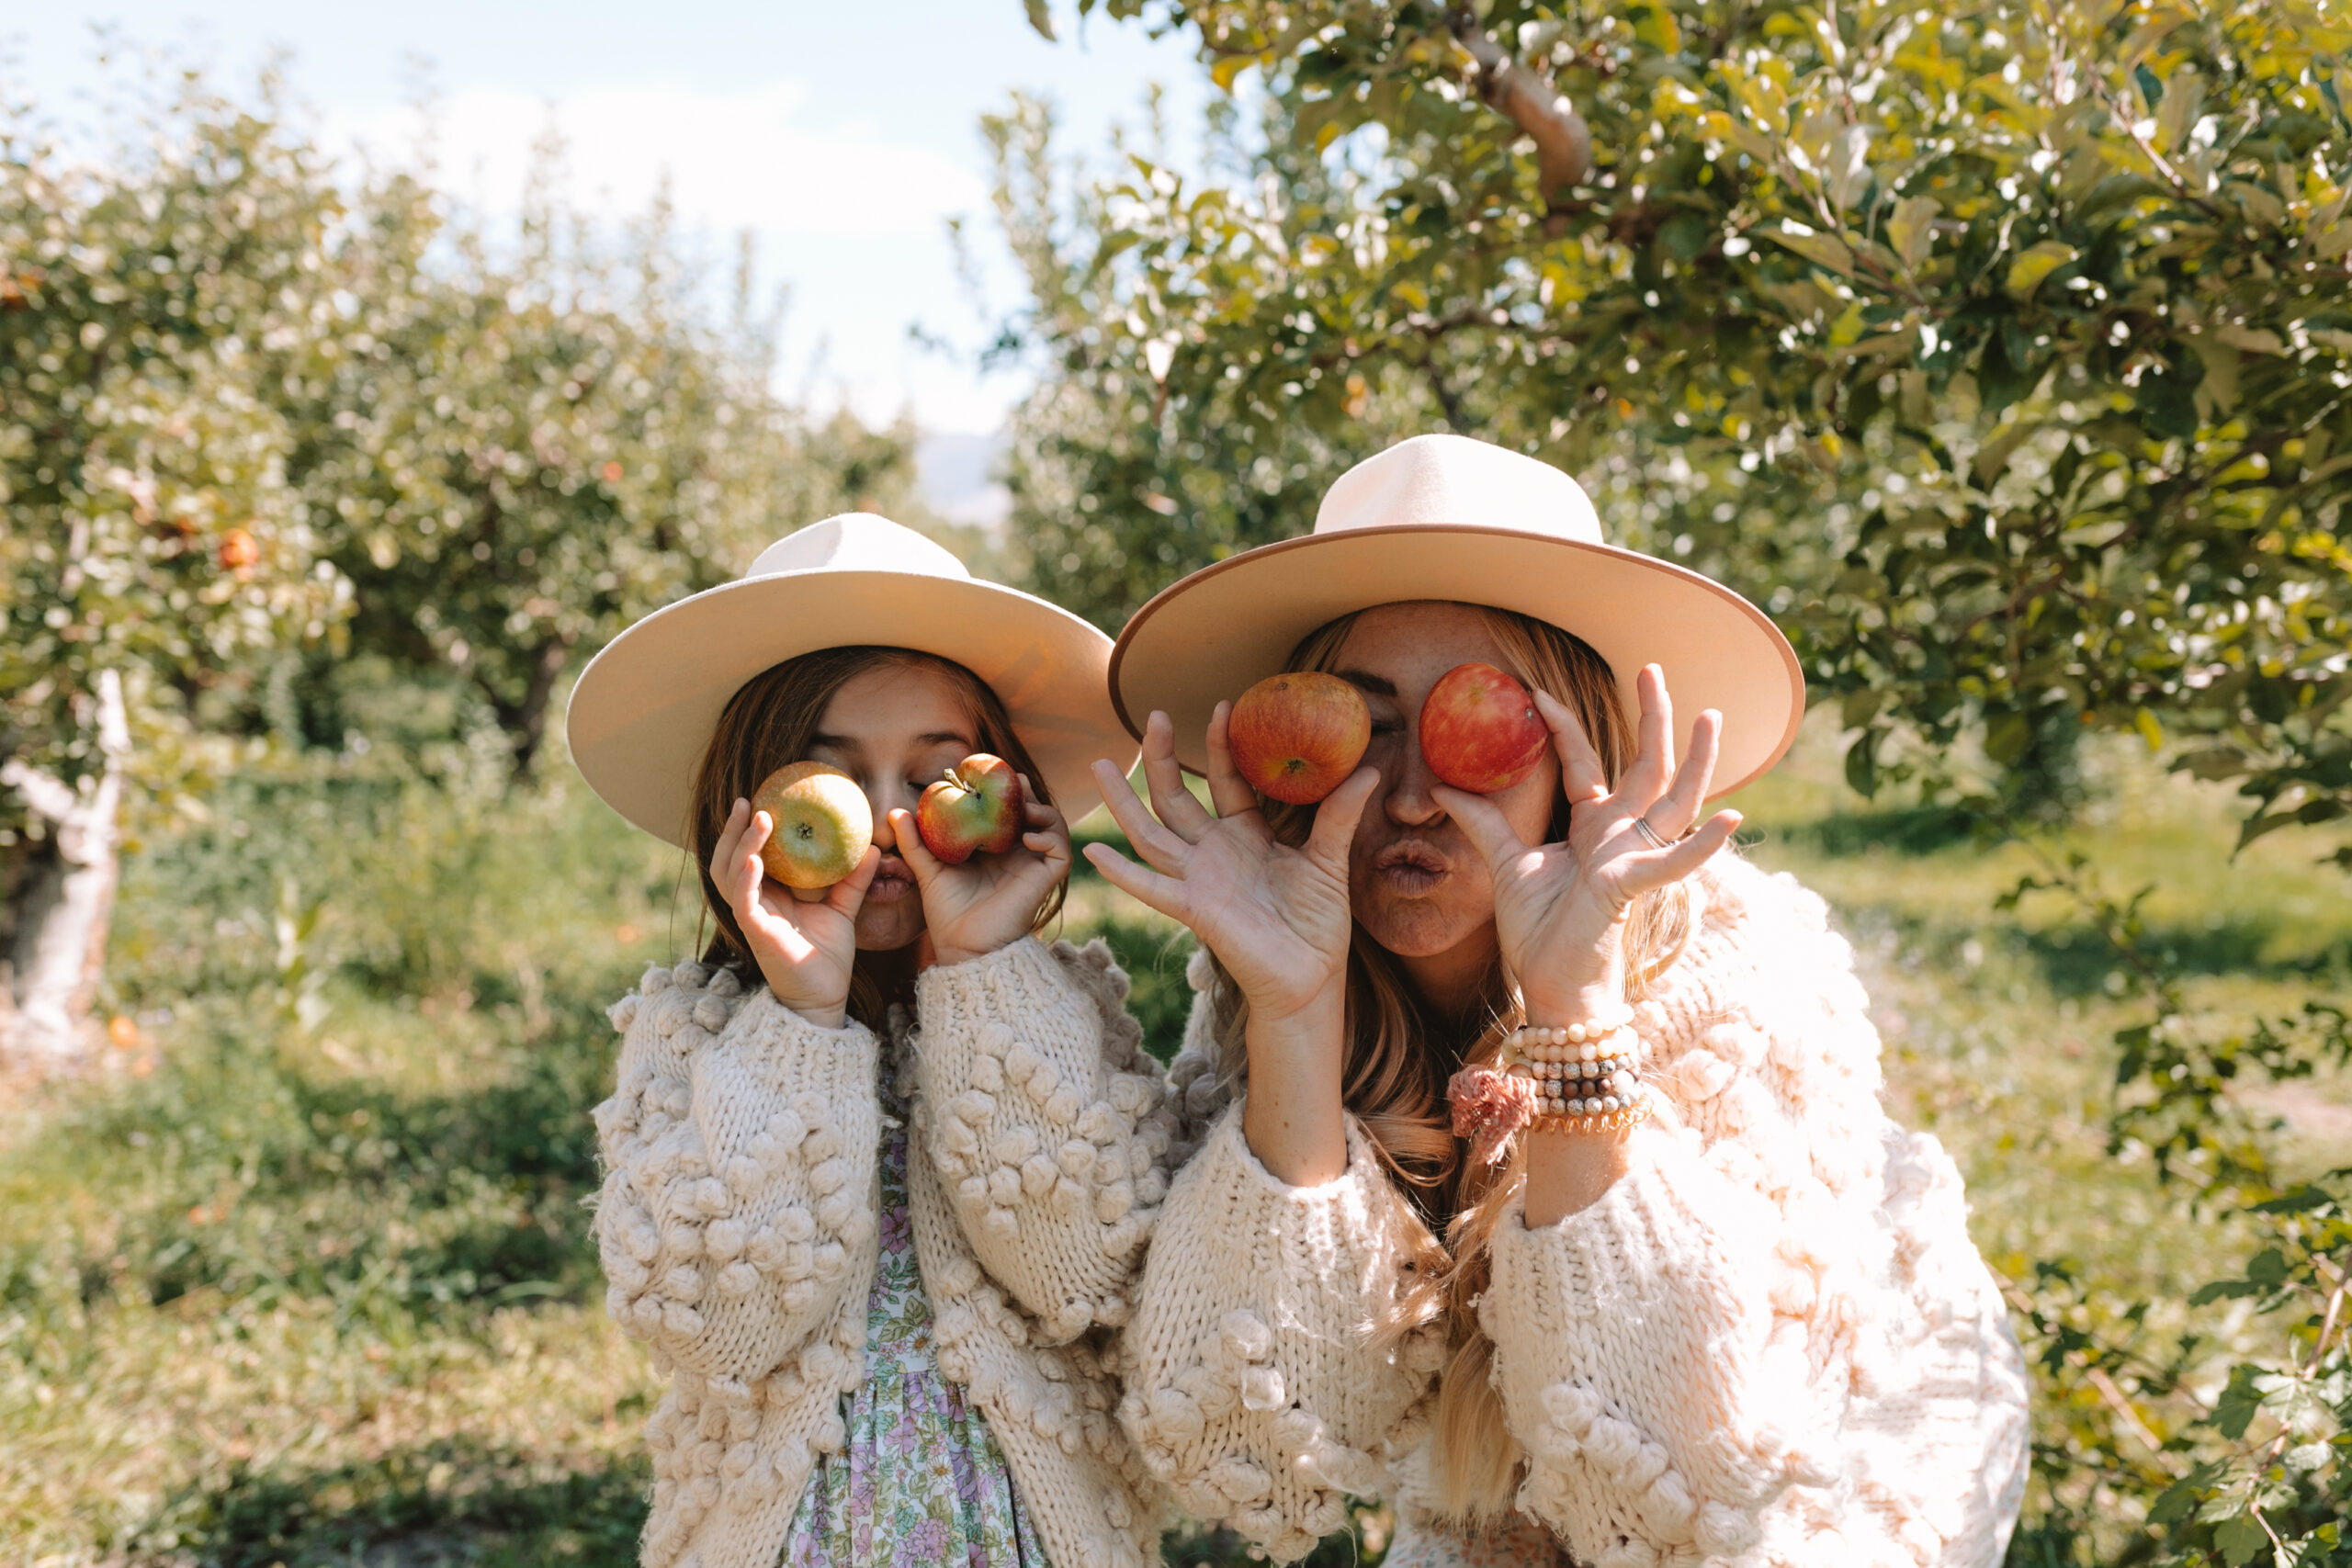 apple love in the apple orchard while apple picking #thelovedesignedlife #fallfun #applepicking